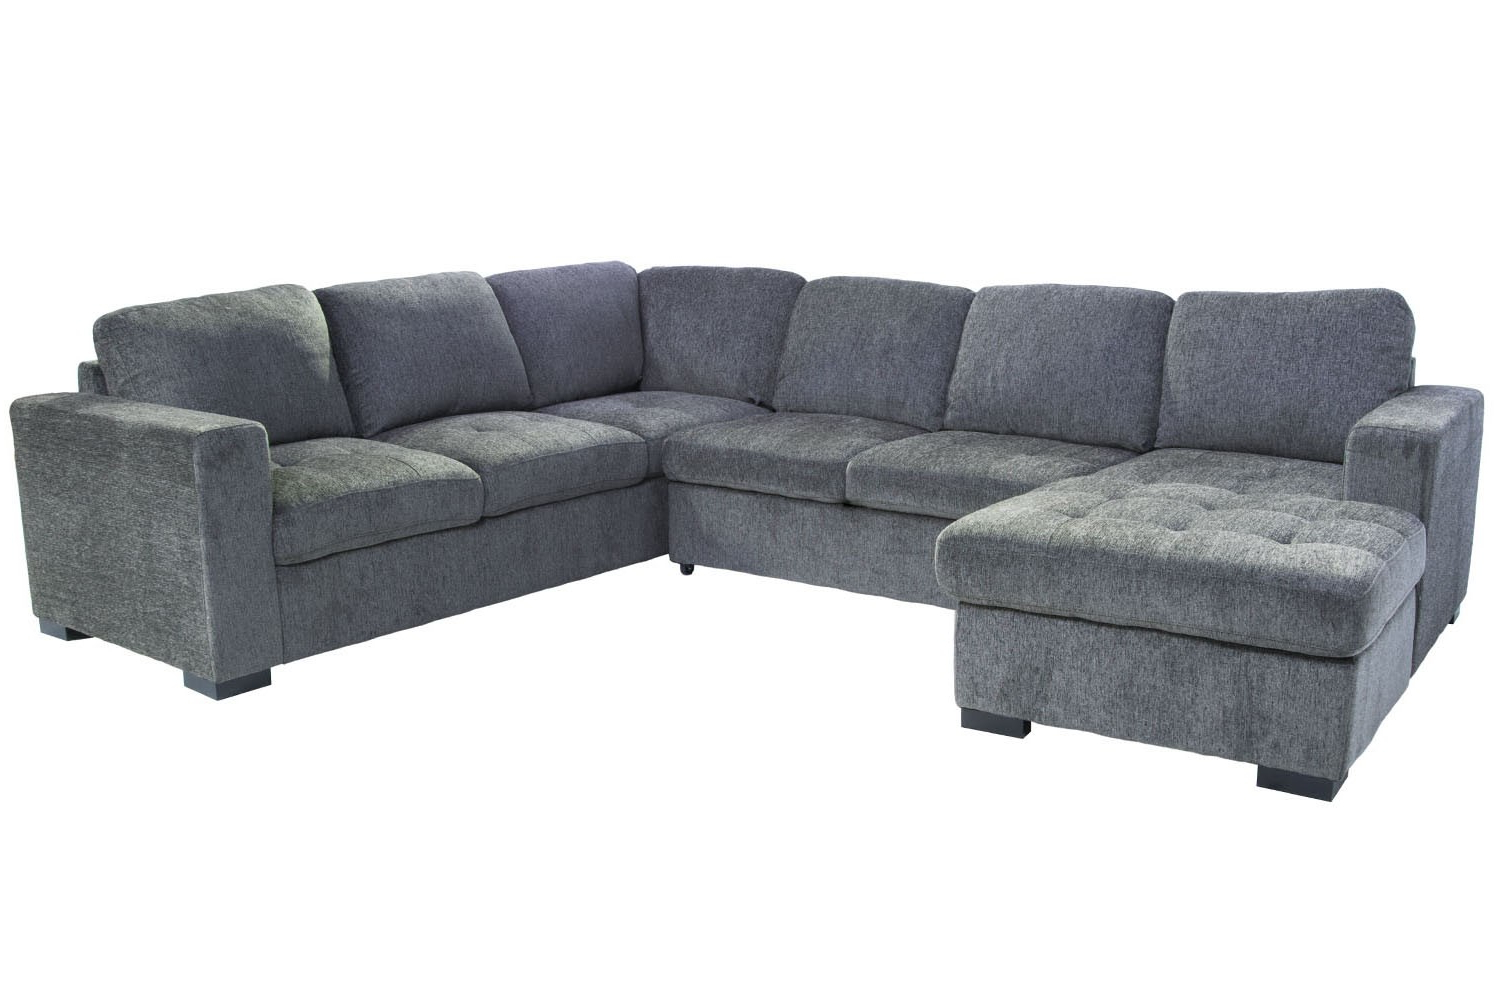 Most Recent Aquarius Light Grey 2 Piece Sectionals With Laf Chaise For Claire 3 Piece Right Facing Chaise Sectional In Gray (View 11 of 20)